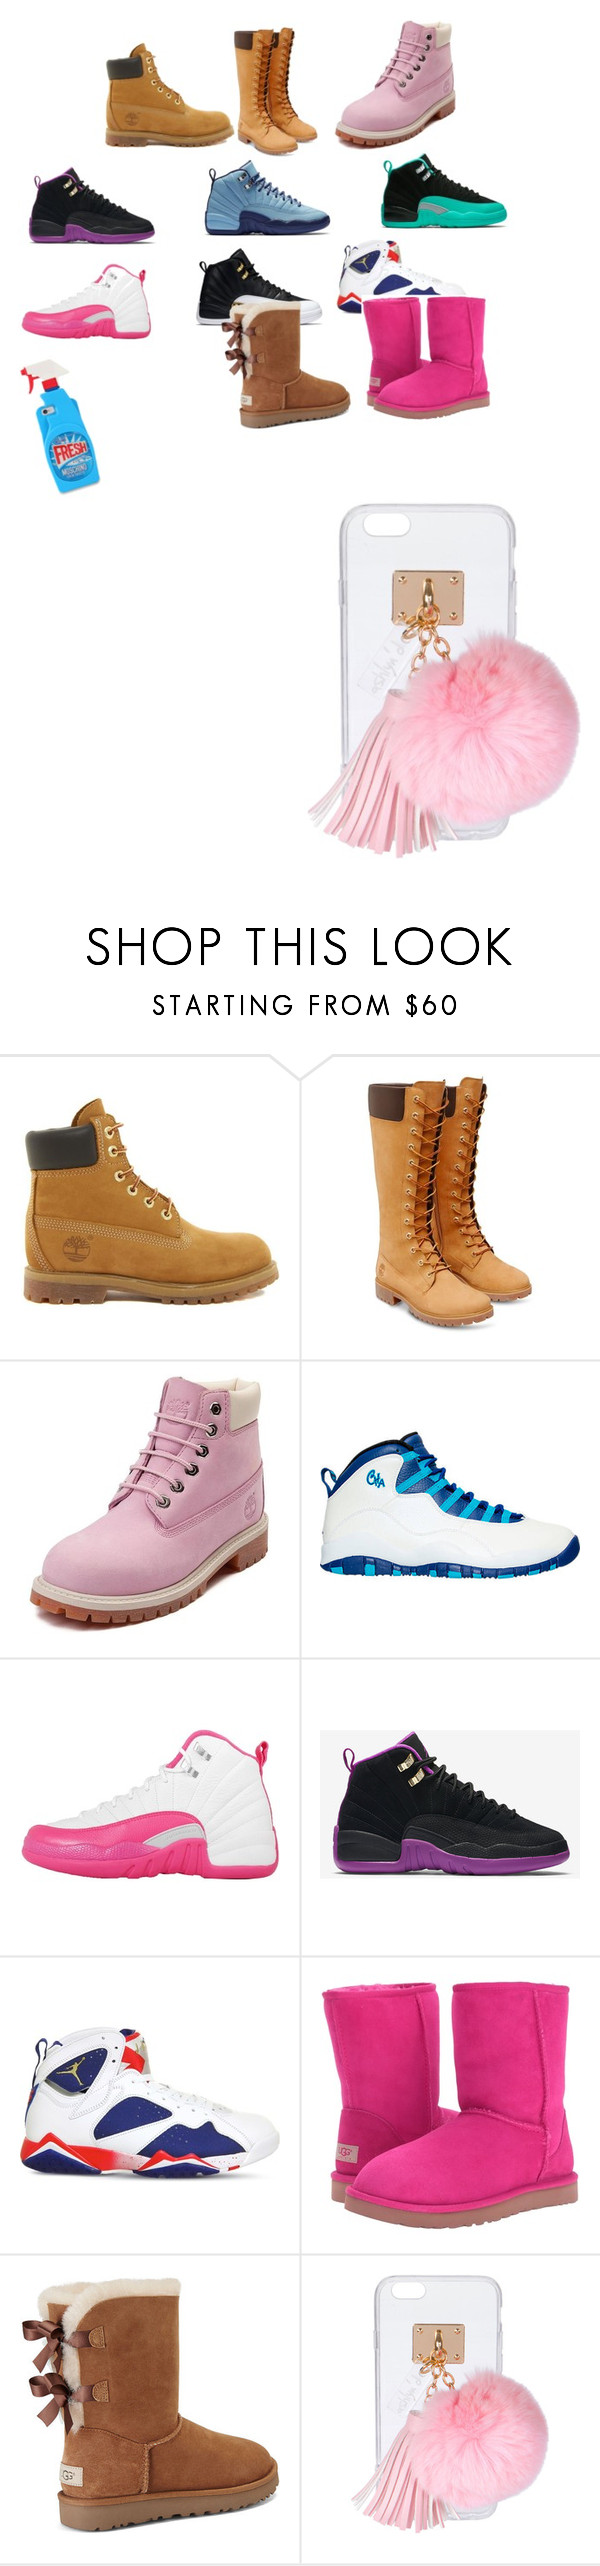 """""""Fye Shoes"""" by frenyahardy ❤ liked on Polyvore featuring Timberland, NIKE, UGG, Ashlyn'd and Moschino"""